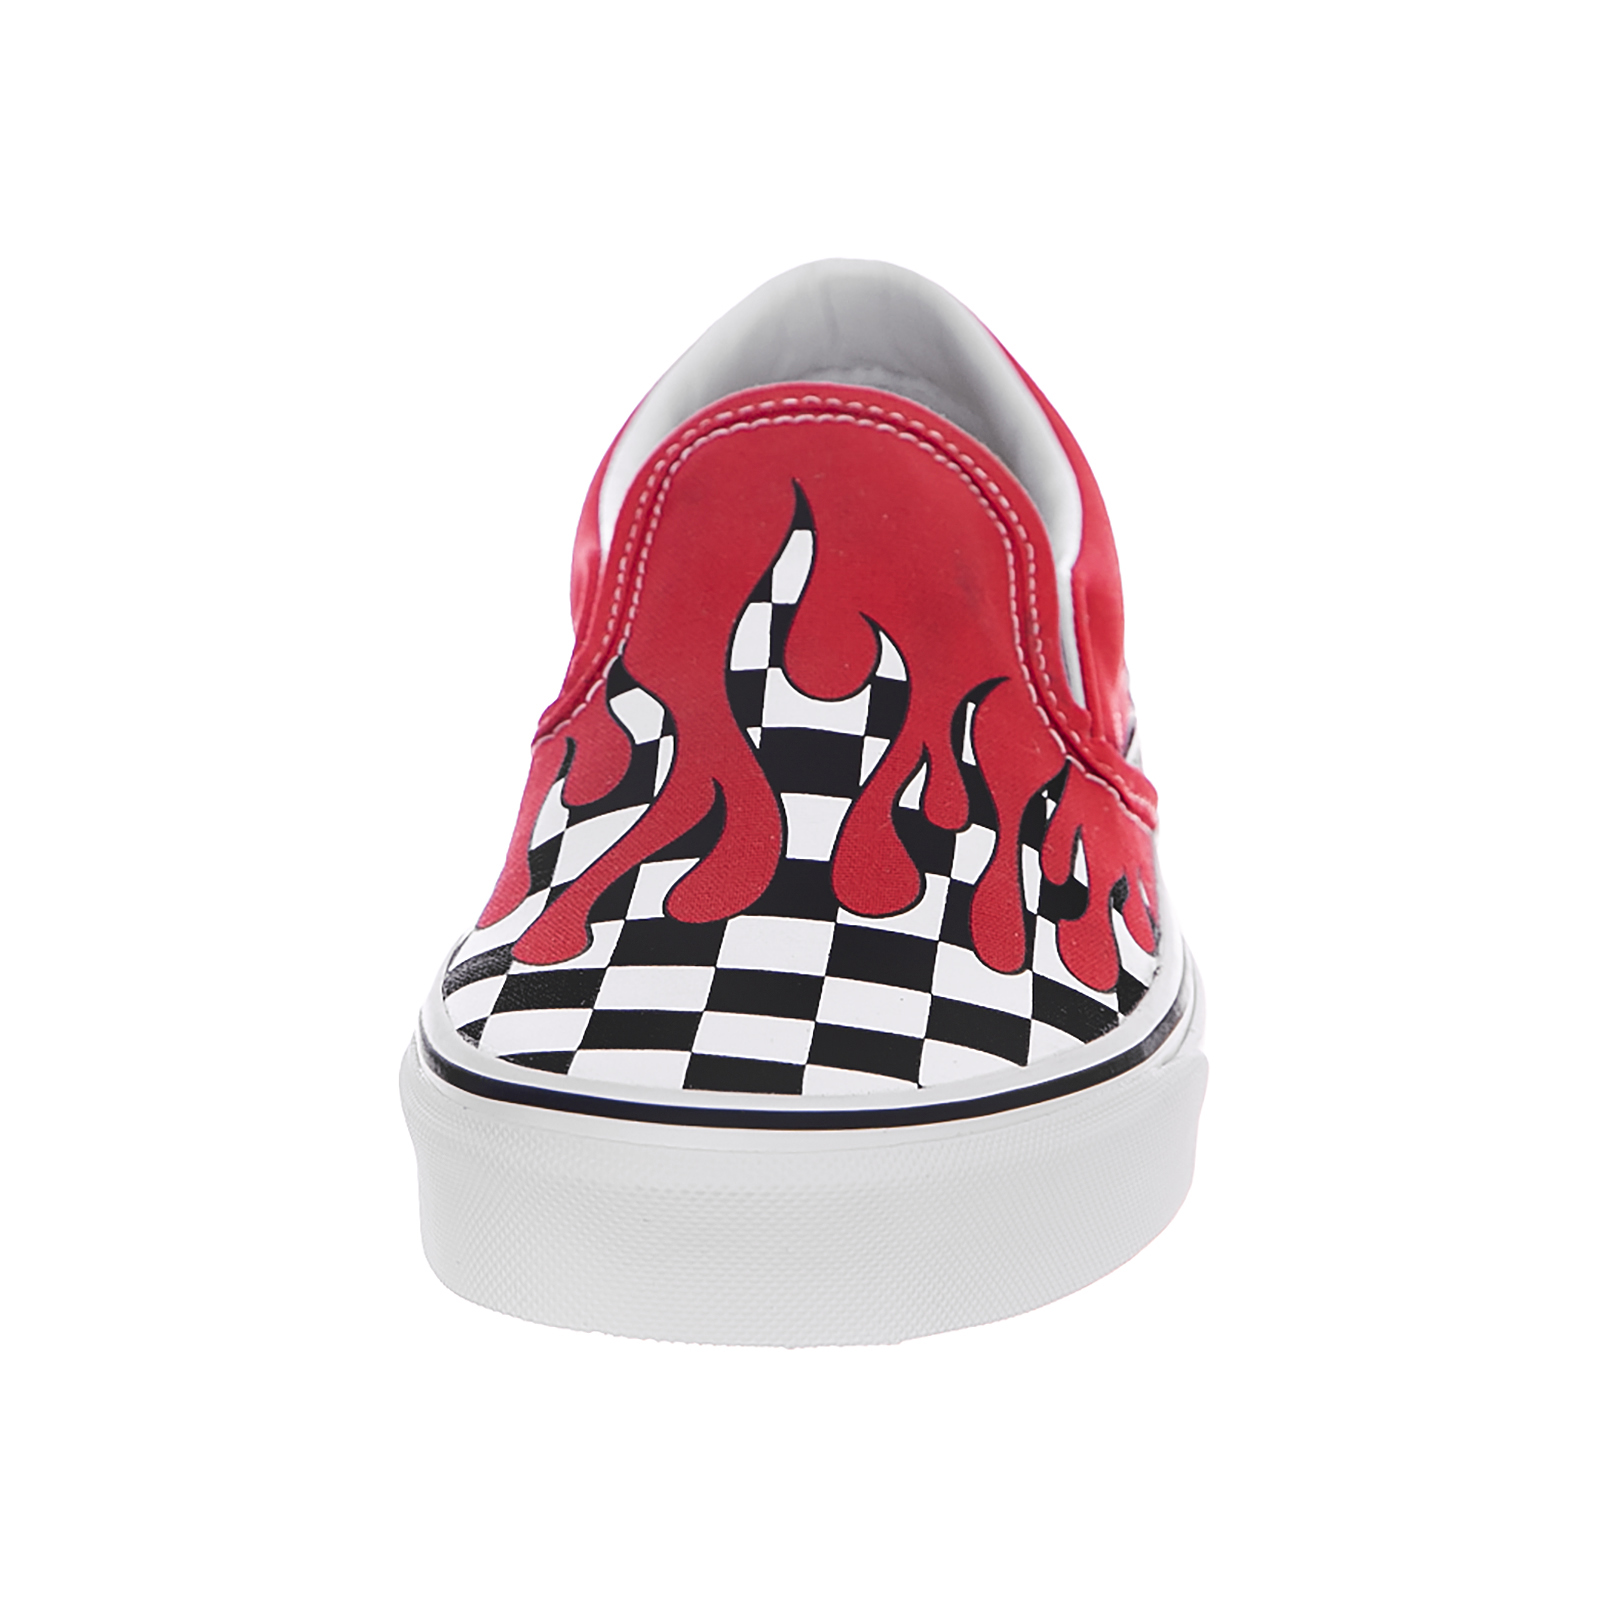 afdaae2280 Vans Sneakers Classic Slip-On (Checker Flame) Racing Red Rosso